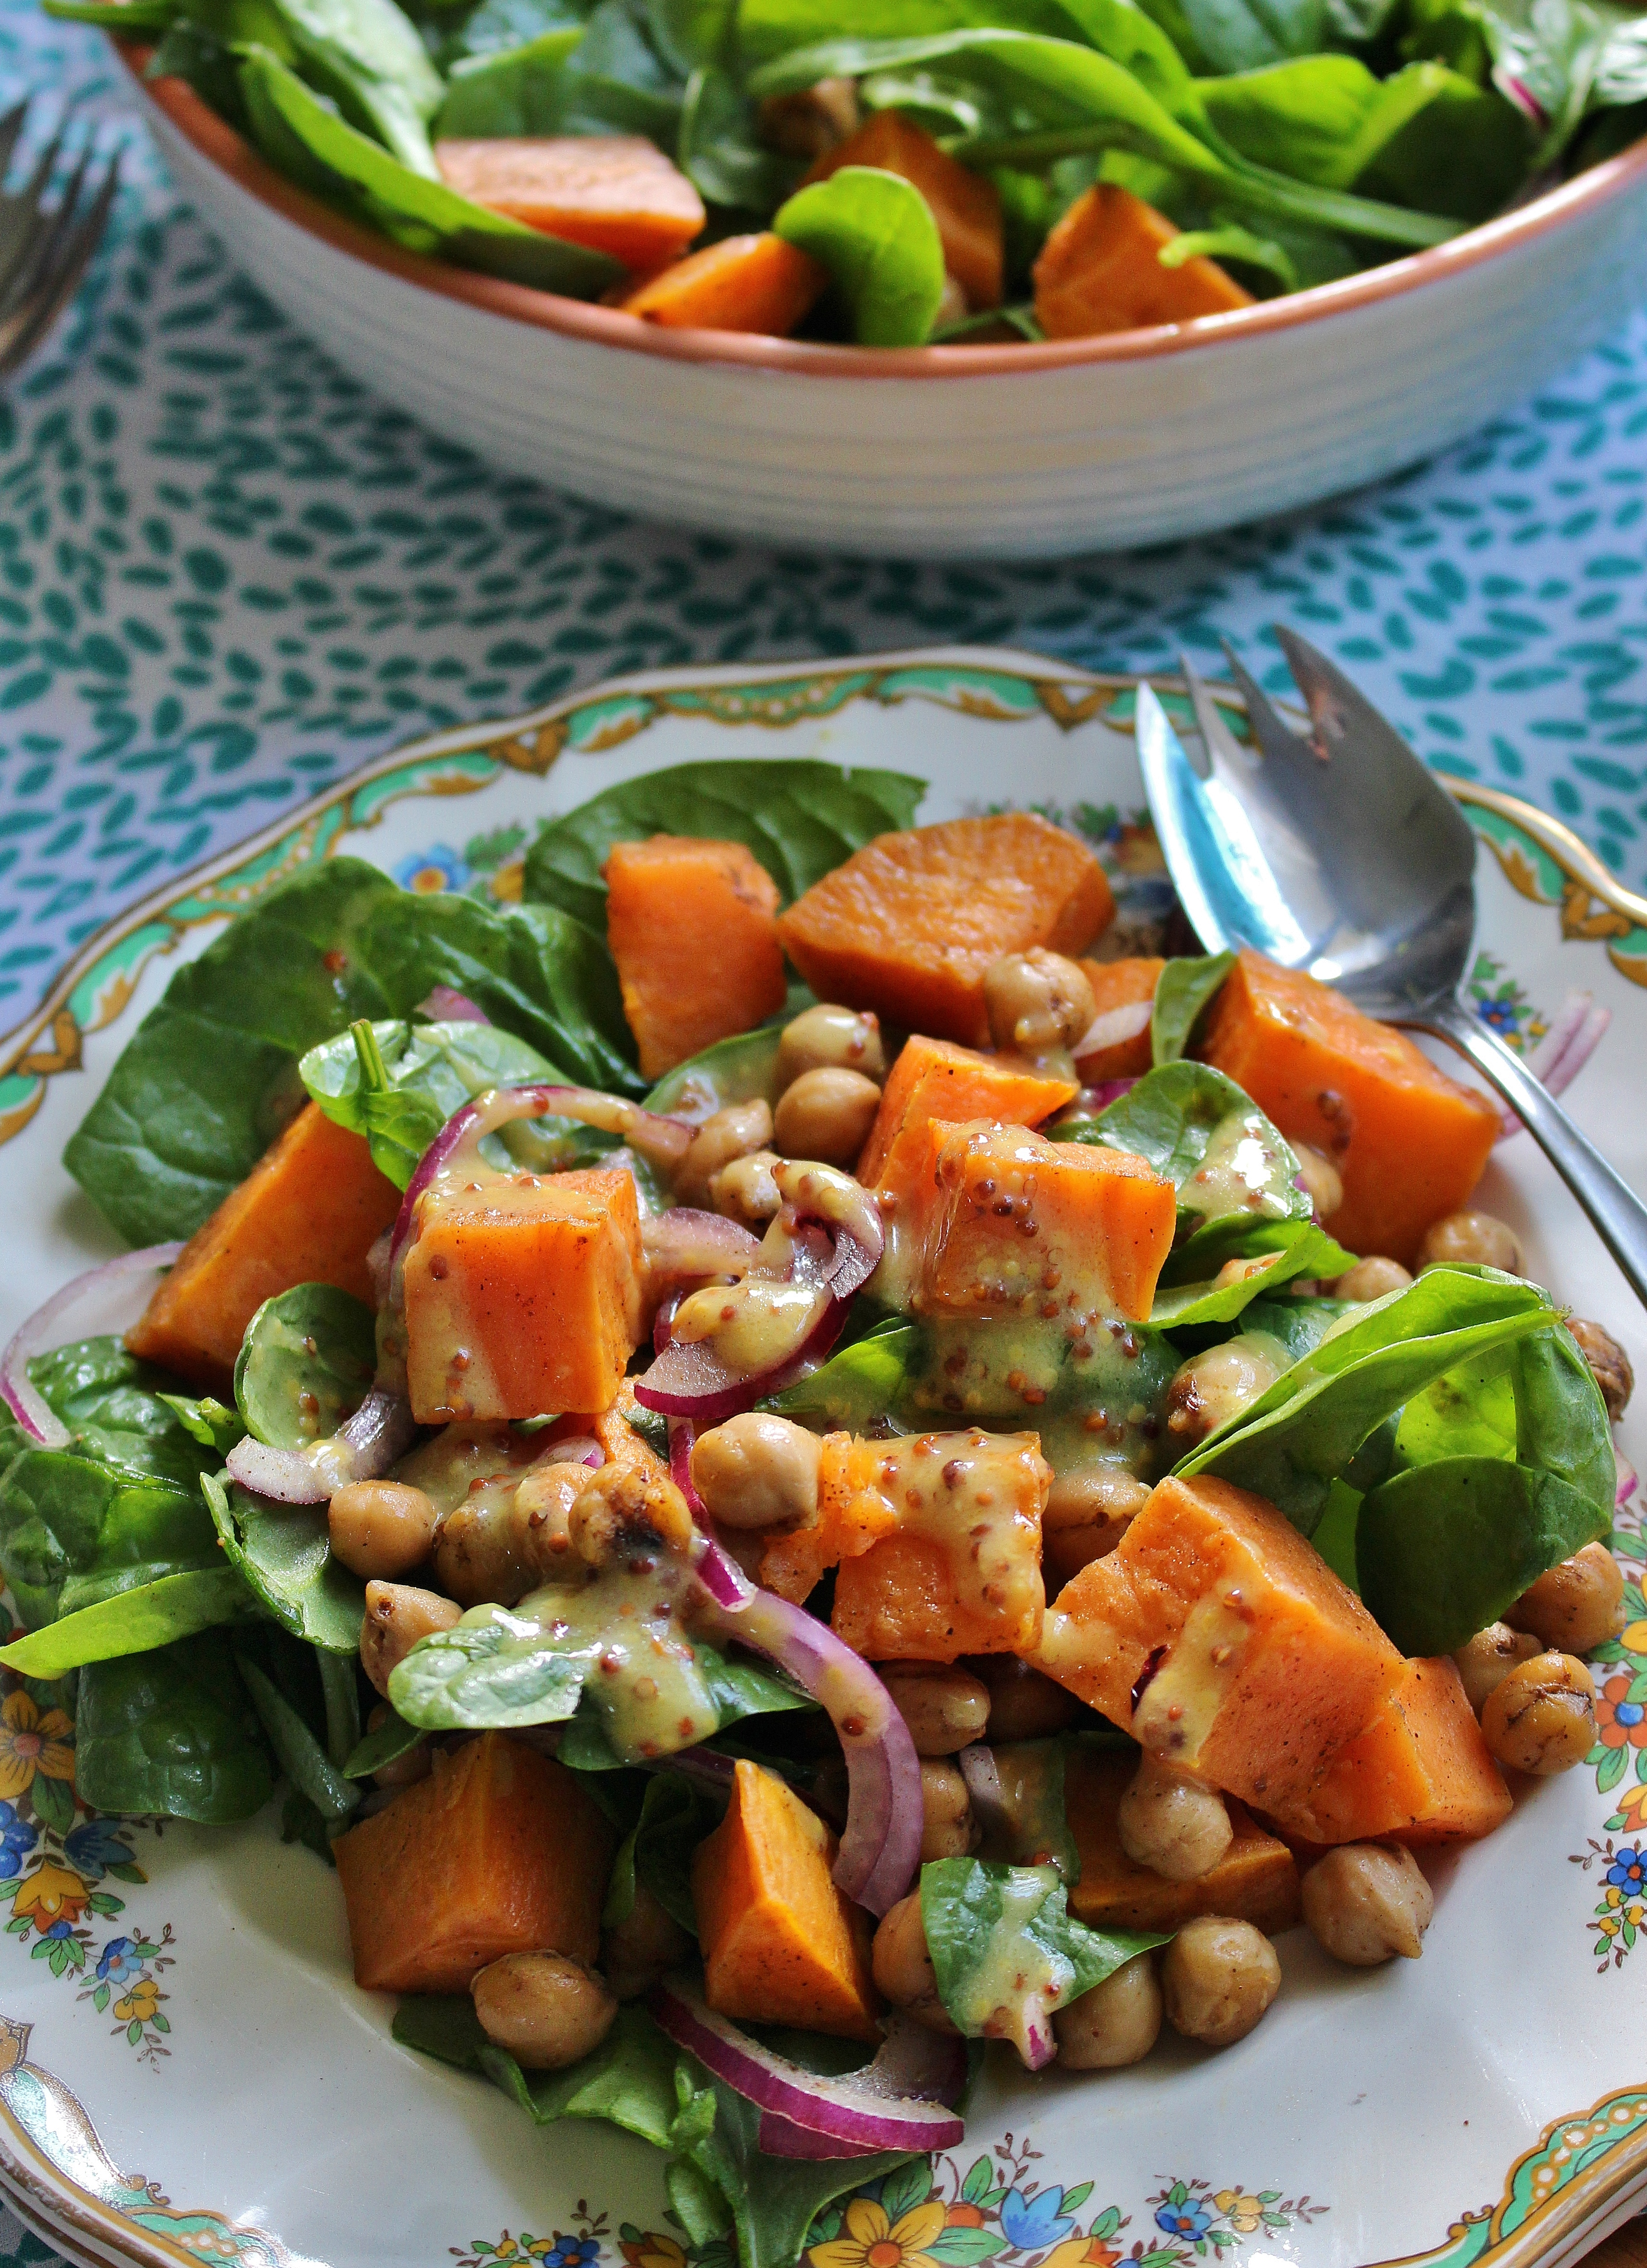 04/29/15--20:43: Cumin Roasted Pumpkin and Brown Rice Moroccan Salad ...